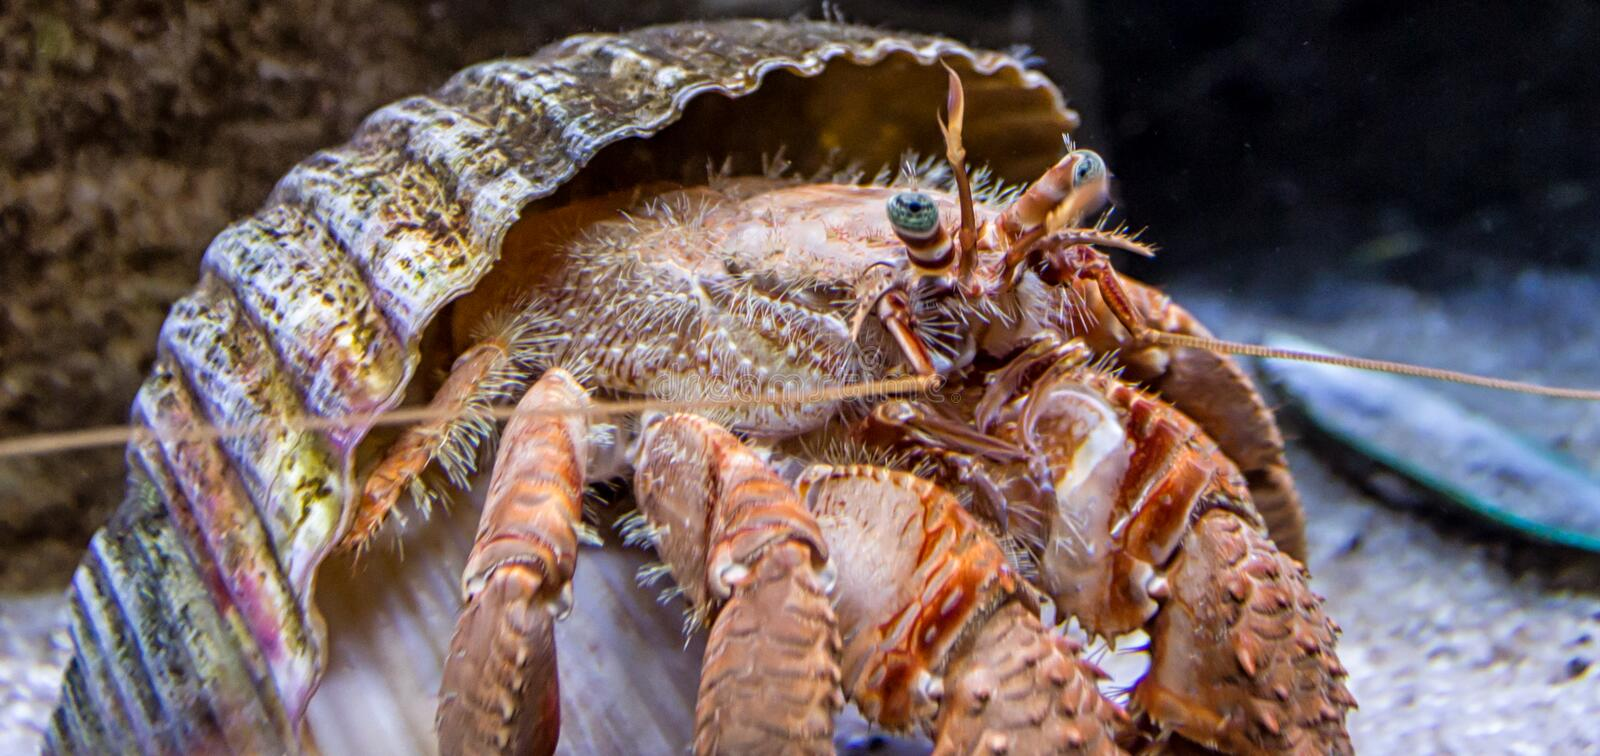 Hermit crab out of shell royalty free stock photography